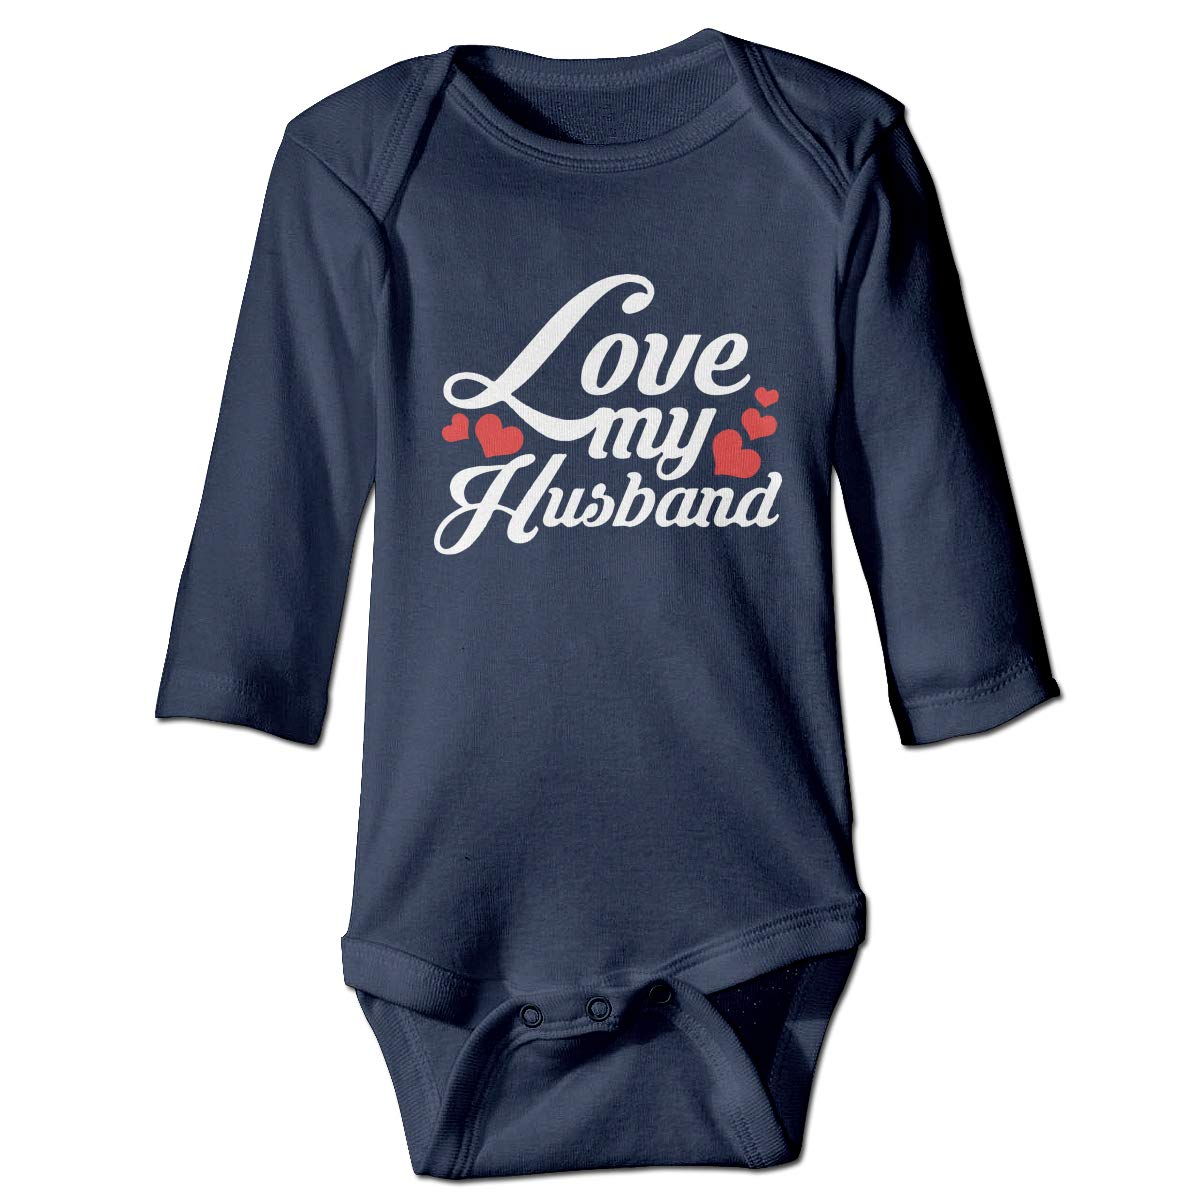 Infant Baby Girls Long Sleeve Jumpsuit Romper I Love My Husband-1 Unisex Button Playsuit Outfit Clothes